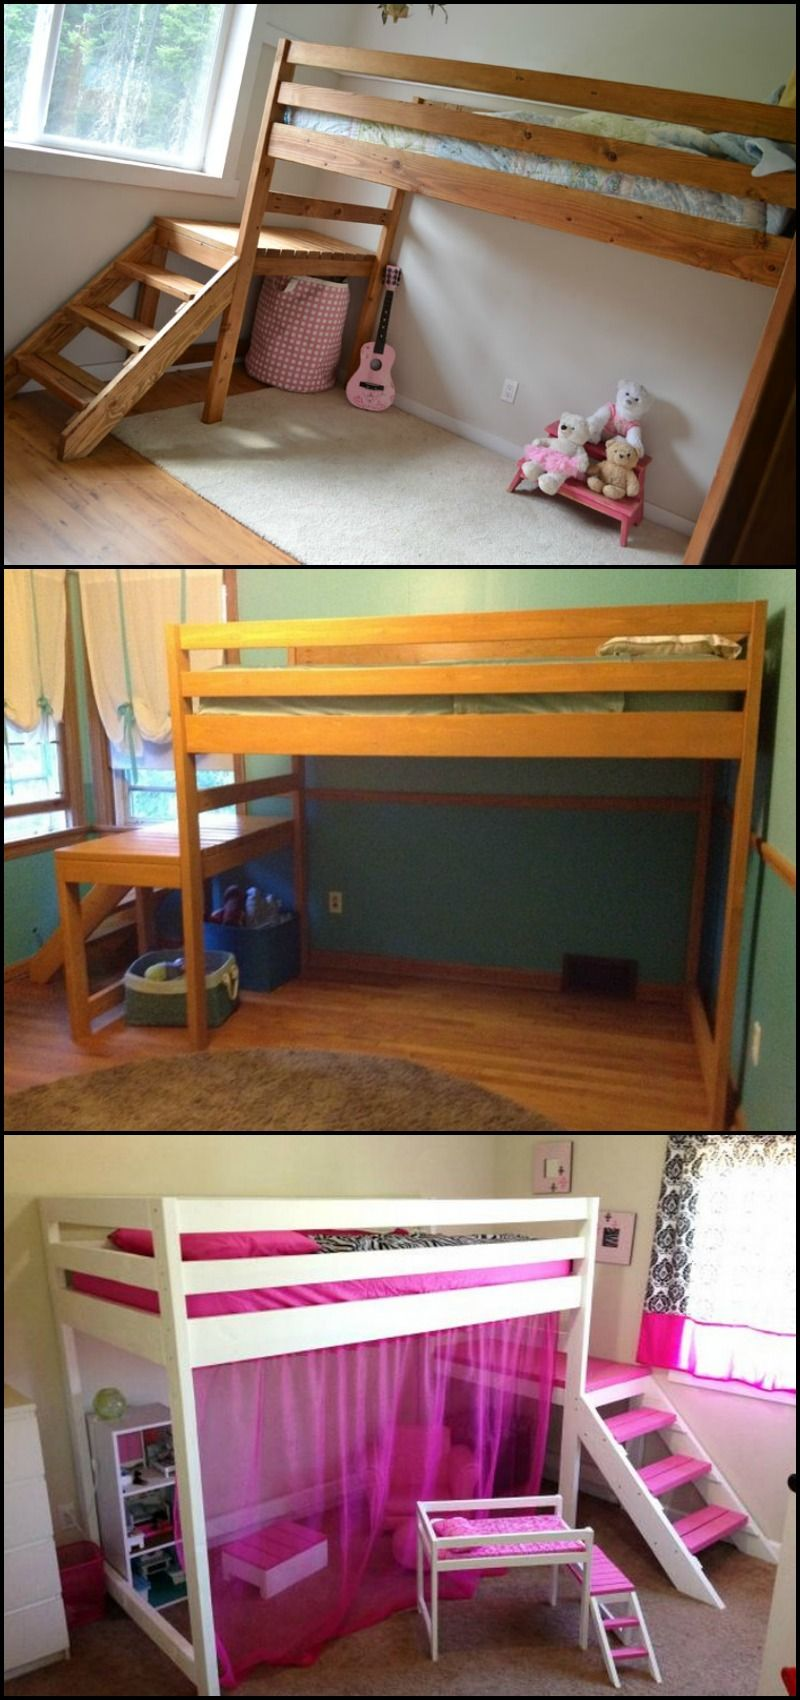 Loft beds for kids diy  How to build a loft bed with stairs  Maximize space Bed design and